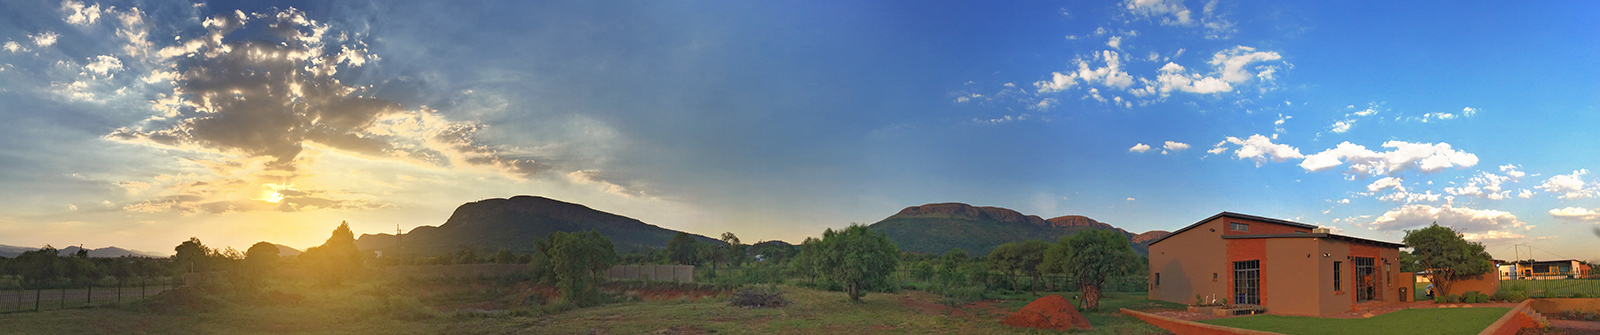 Magalies Mountains as seen from Incendo Distillery in Hartbeespoort